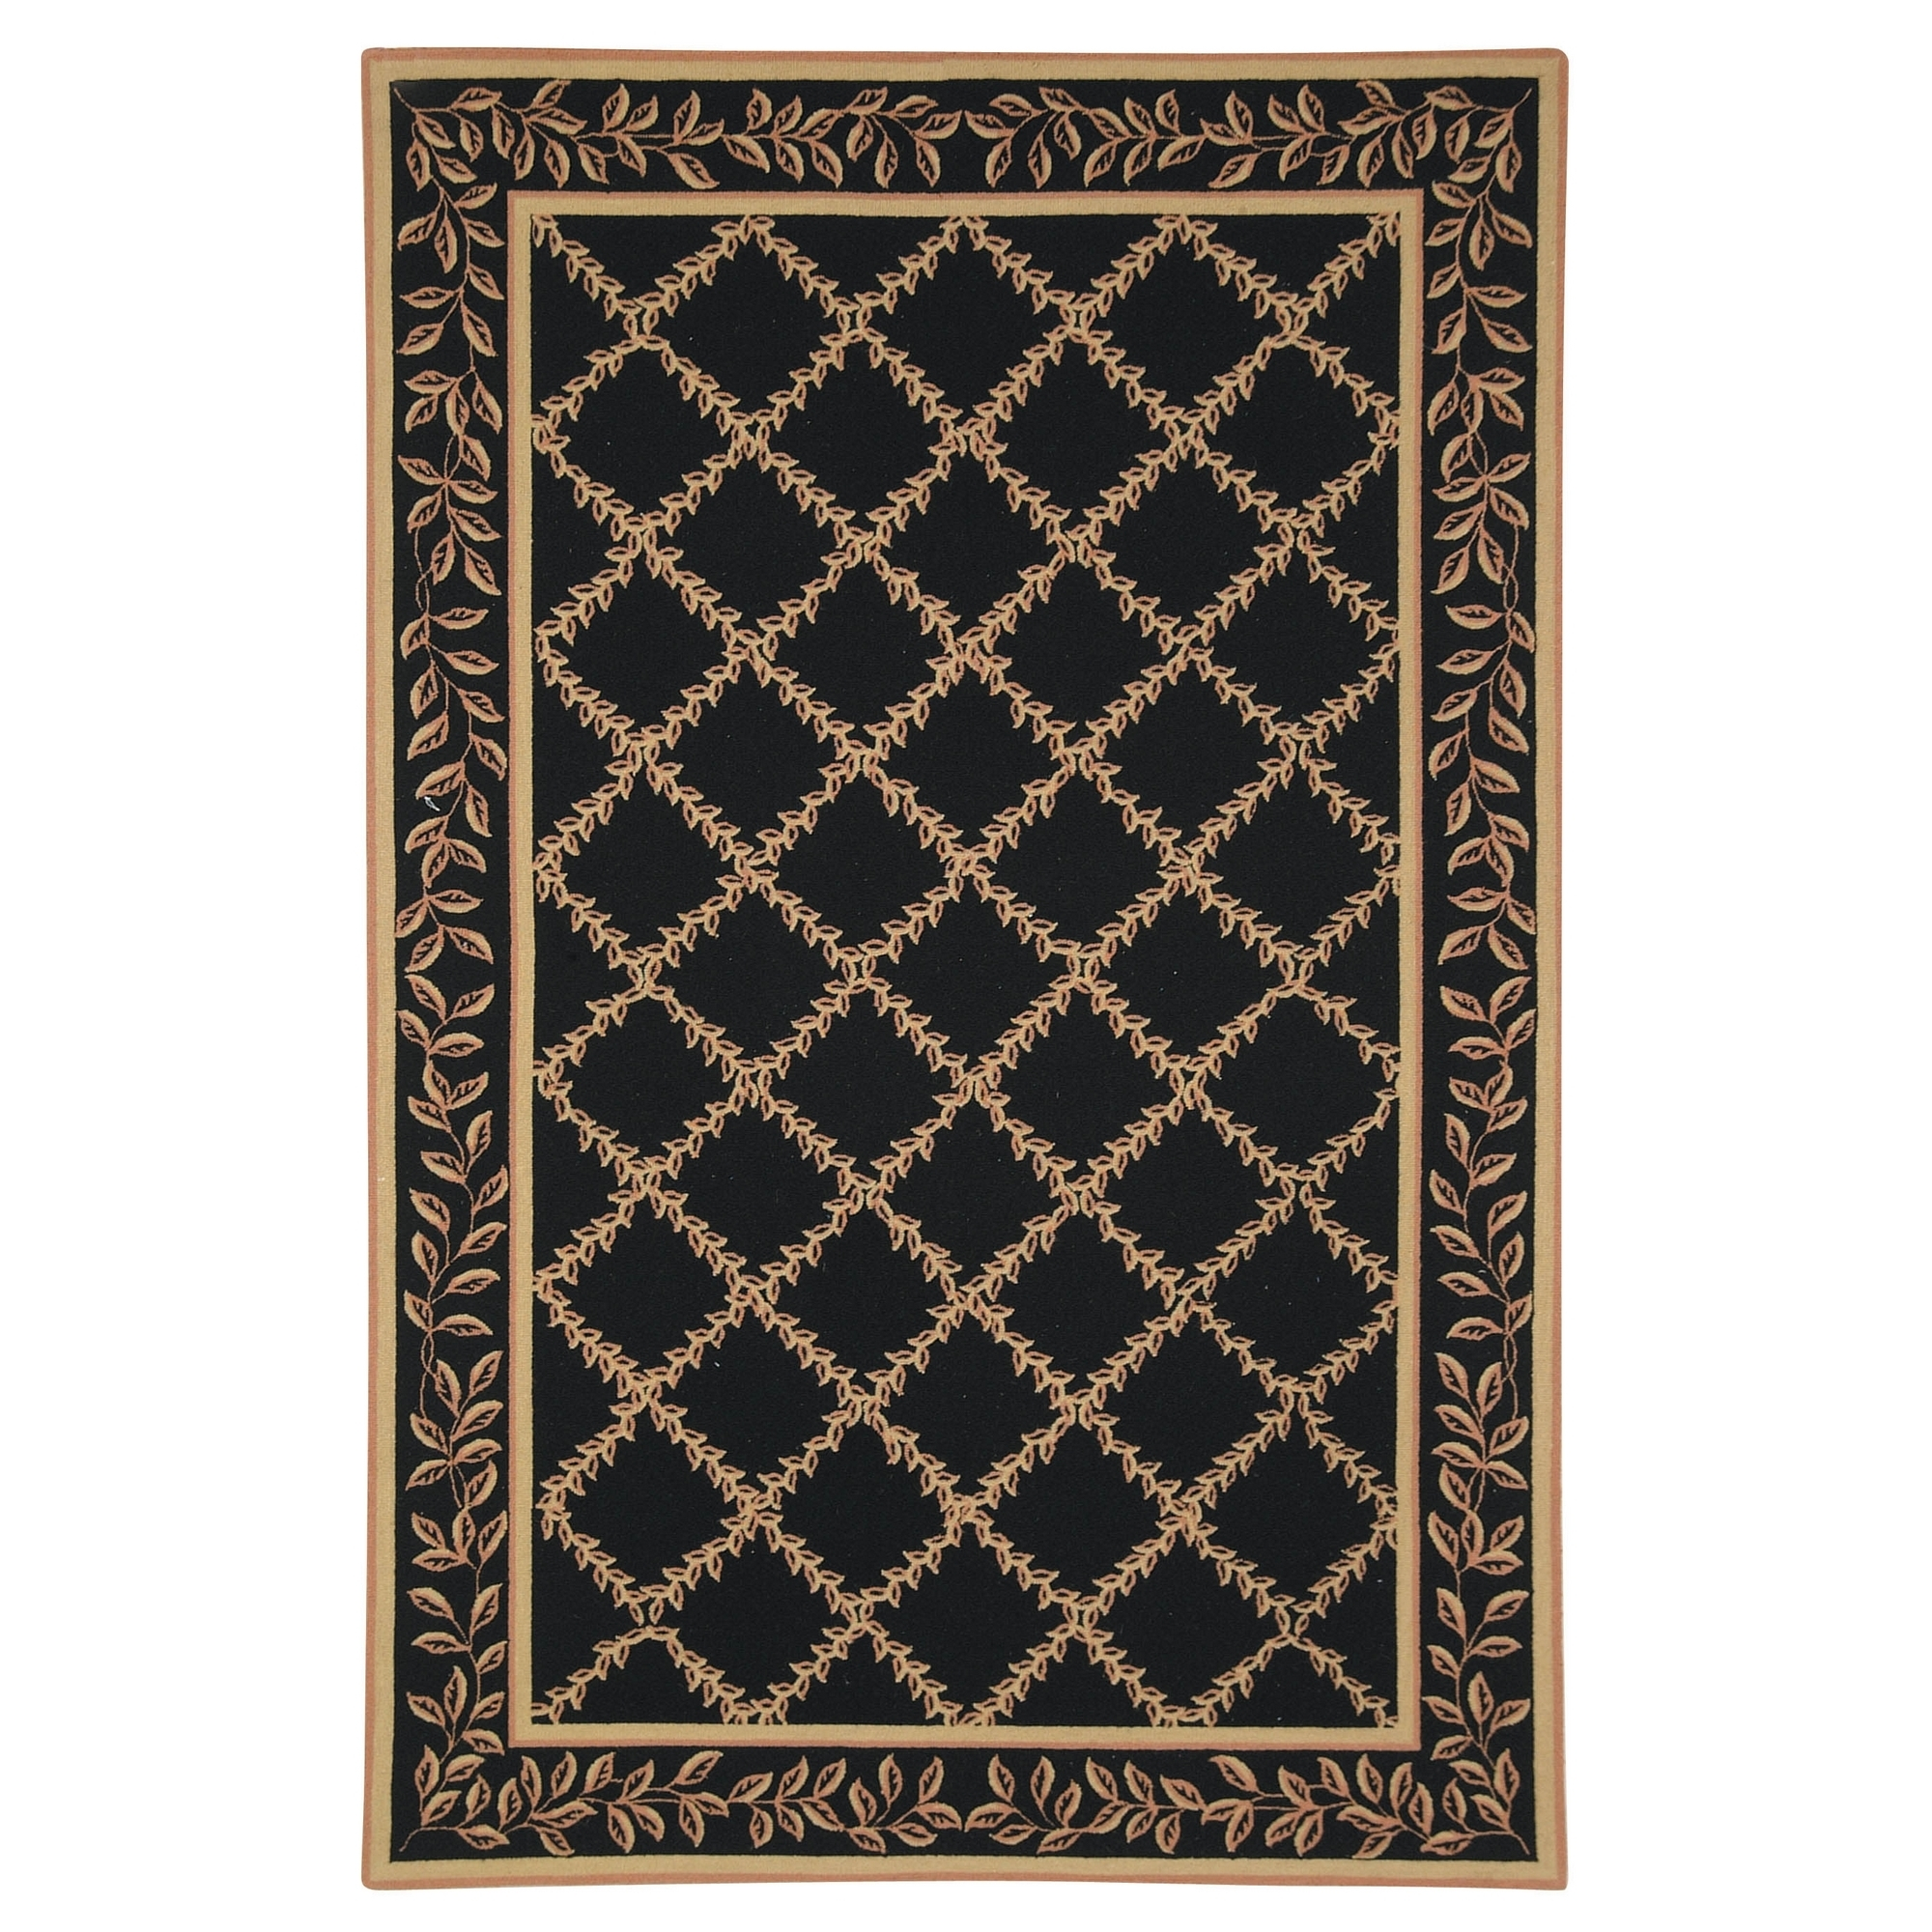 Safavieh Chelsea Hand Hooked Black Beige Wool Area Rugs Hk230d Intended For Hand Hooked Wool Area Rugs (#10 of 15)